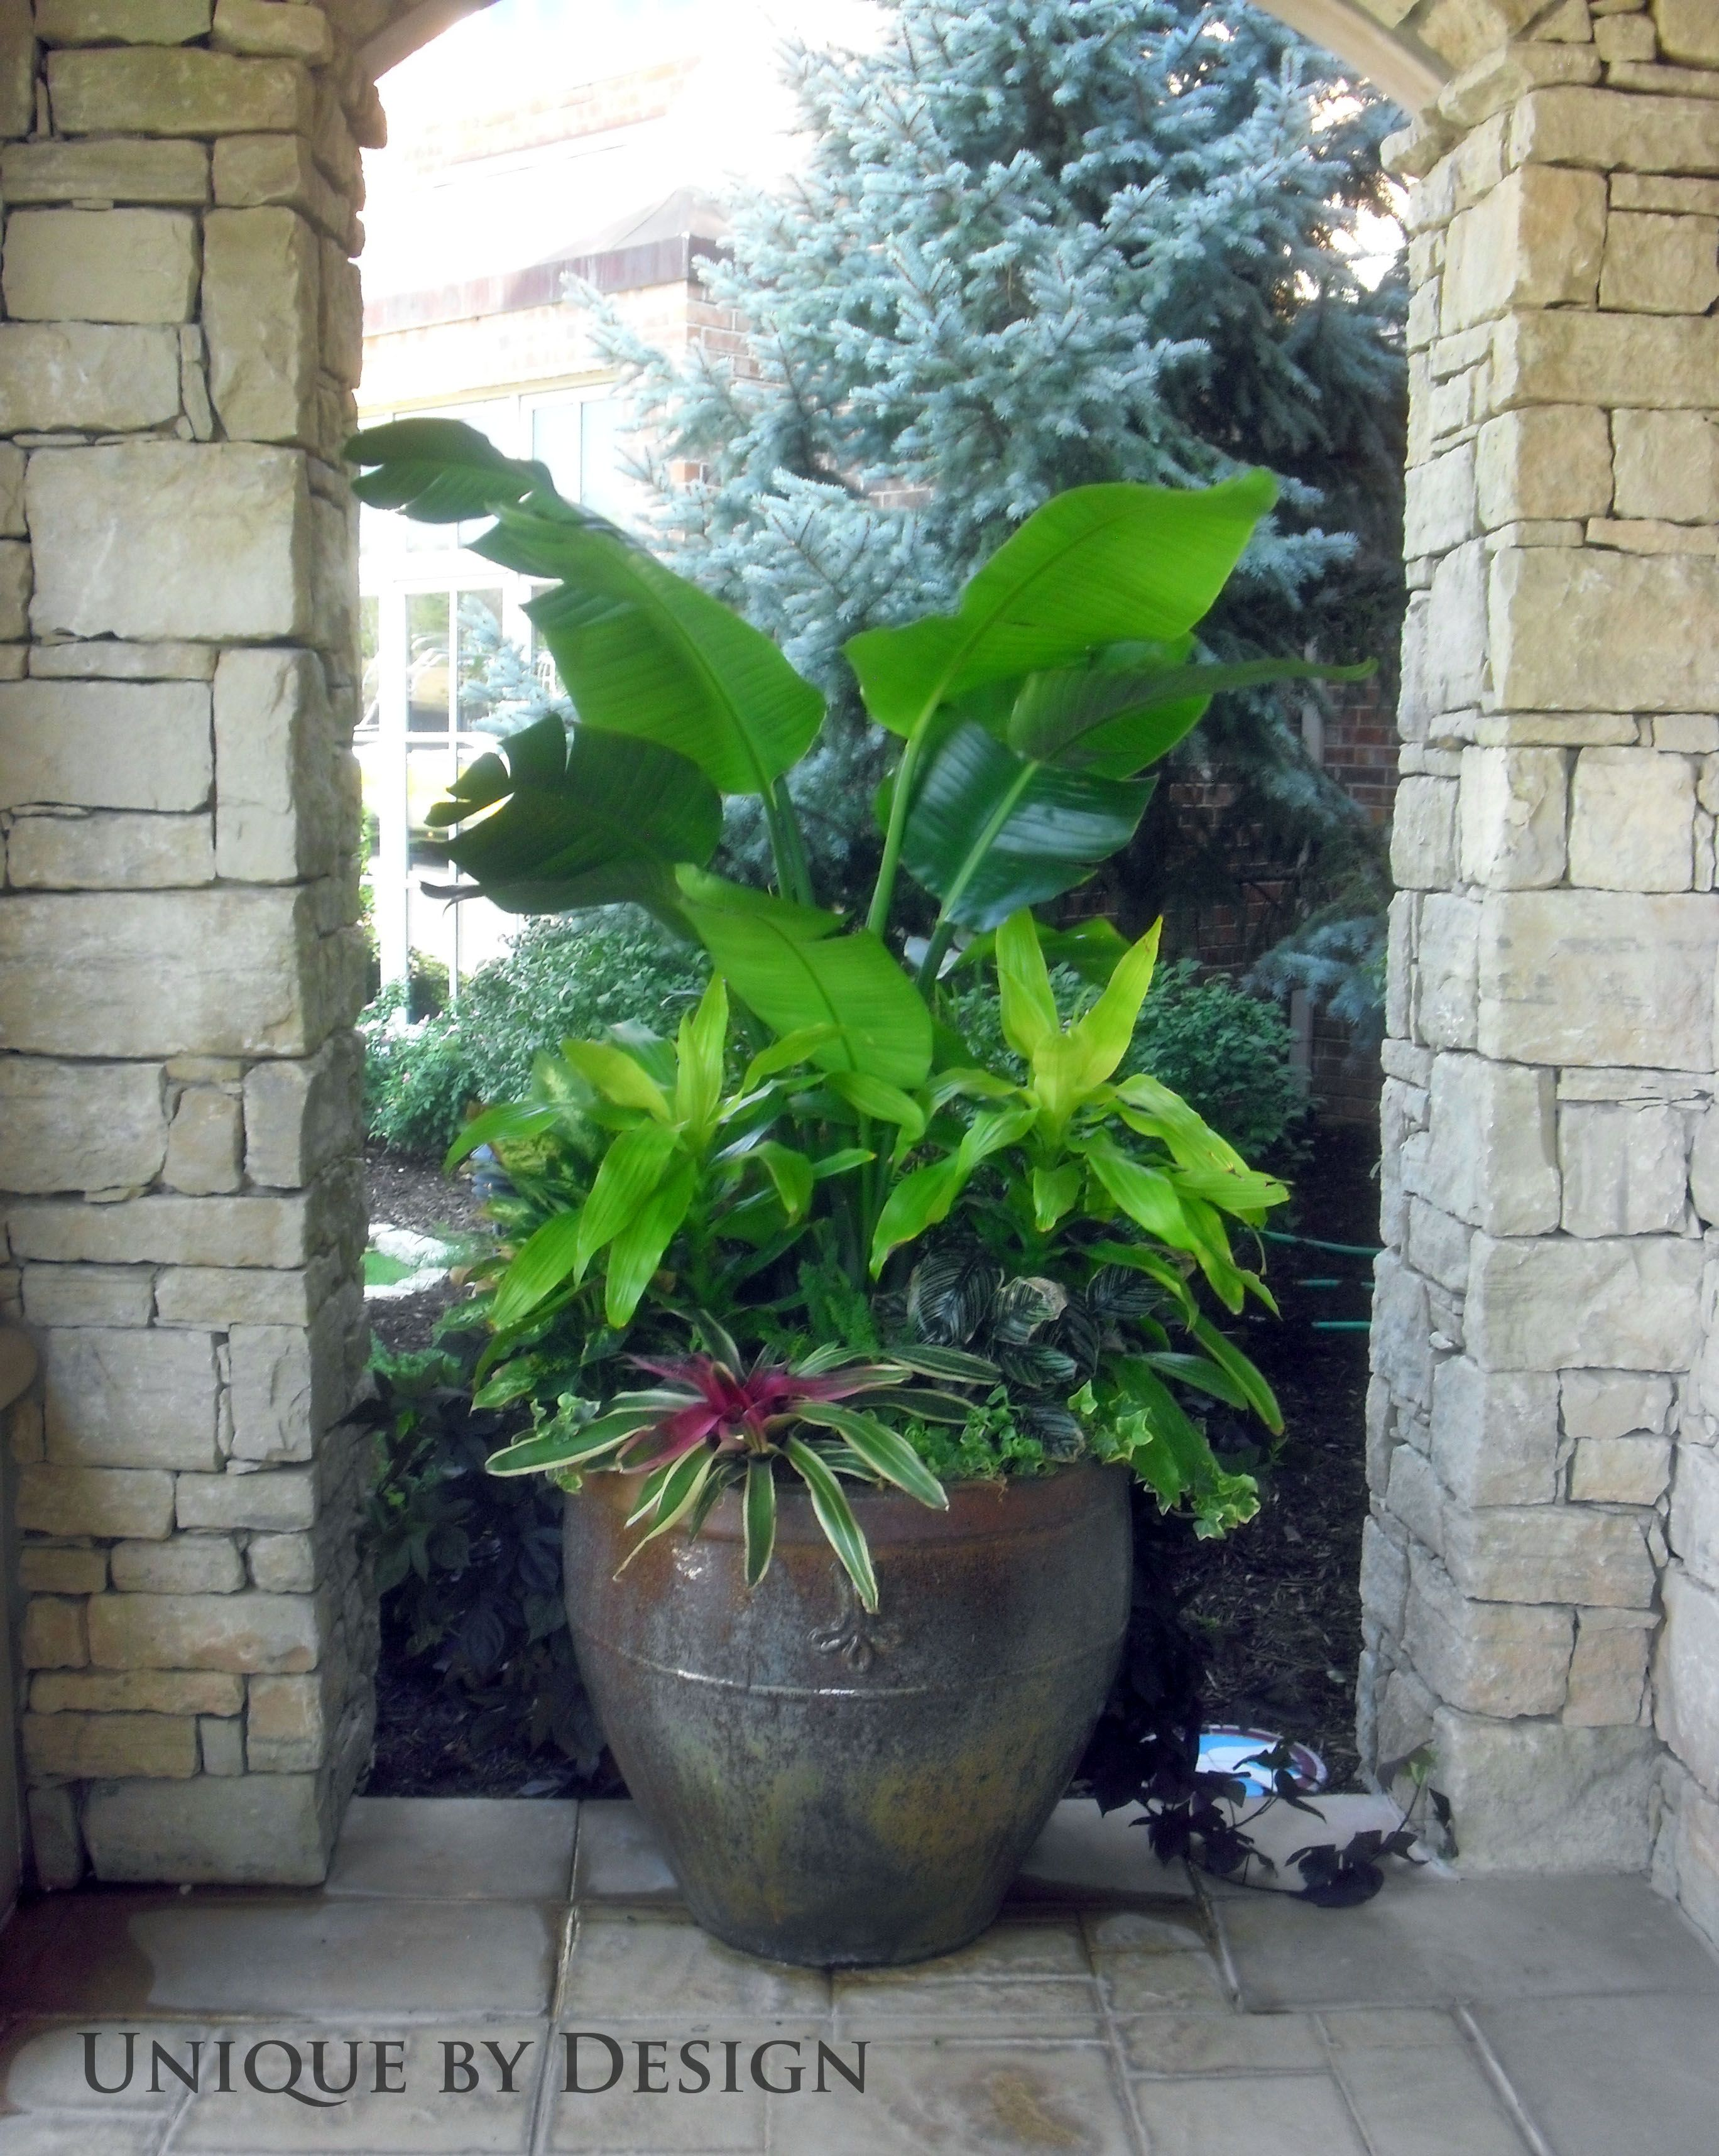 Unique by design l helen weis container gardening - Unusual planters for outdoors ...